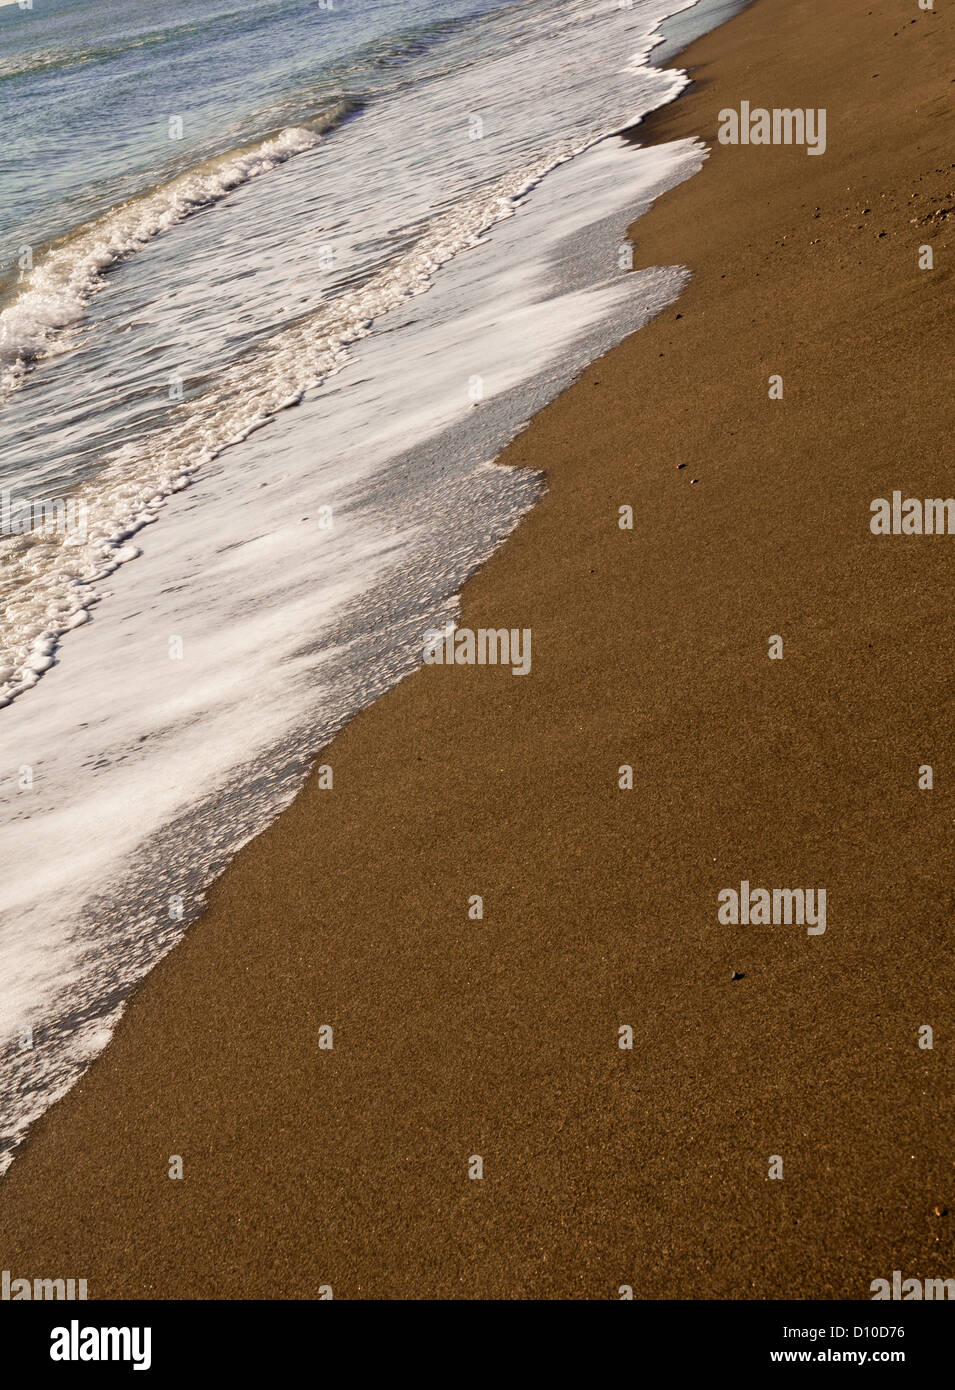 White waves breaking on a sandy beach - Stock Image